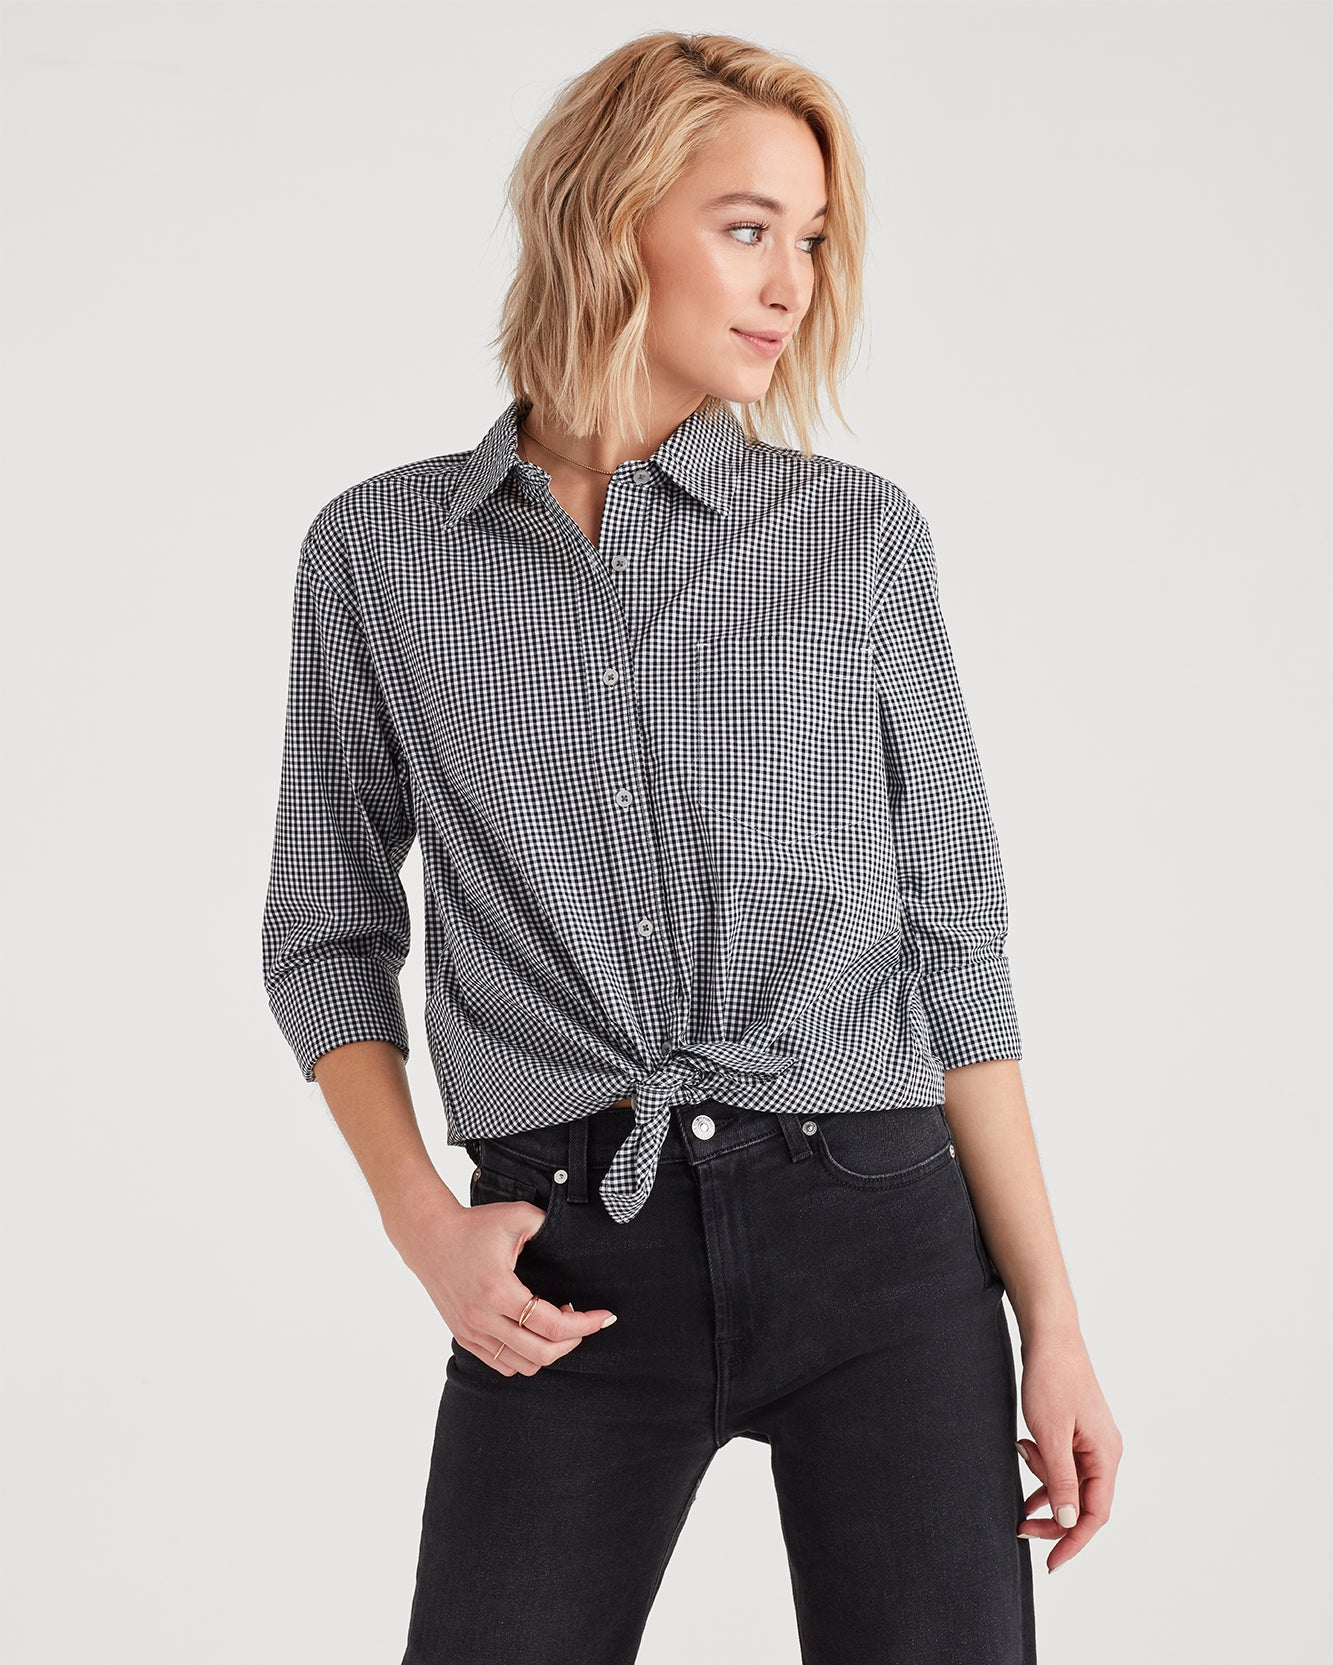 Image of Gingham High Low Tie Front Shirt in Black and White